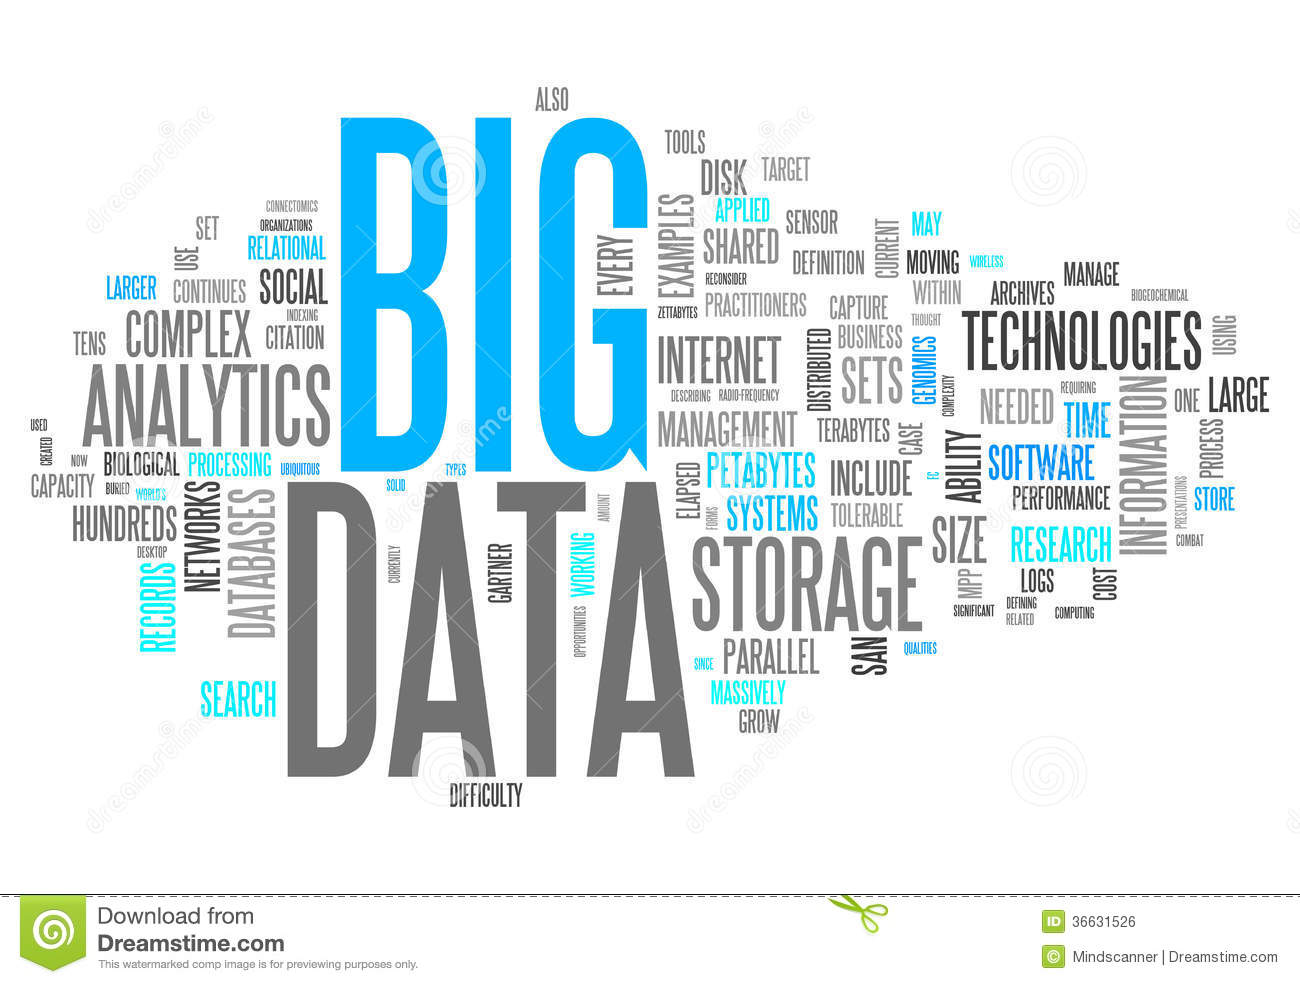 word-cloud-big-data-36631526.jpg